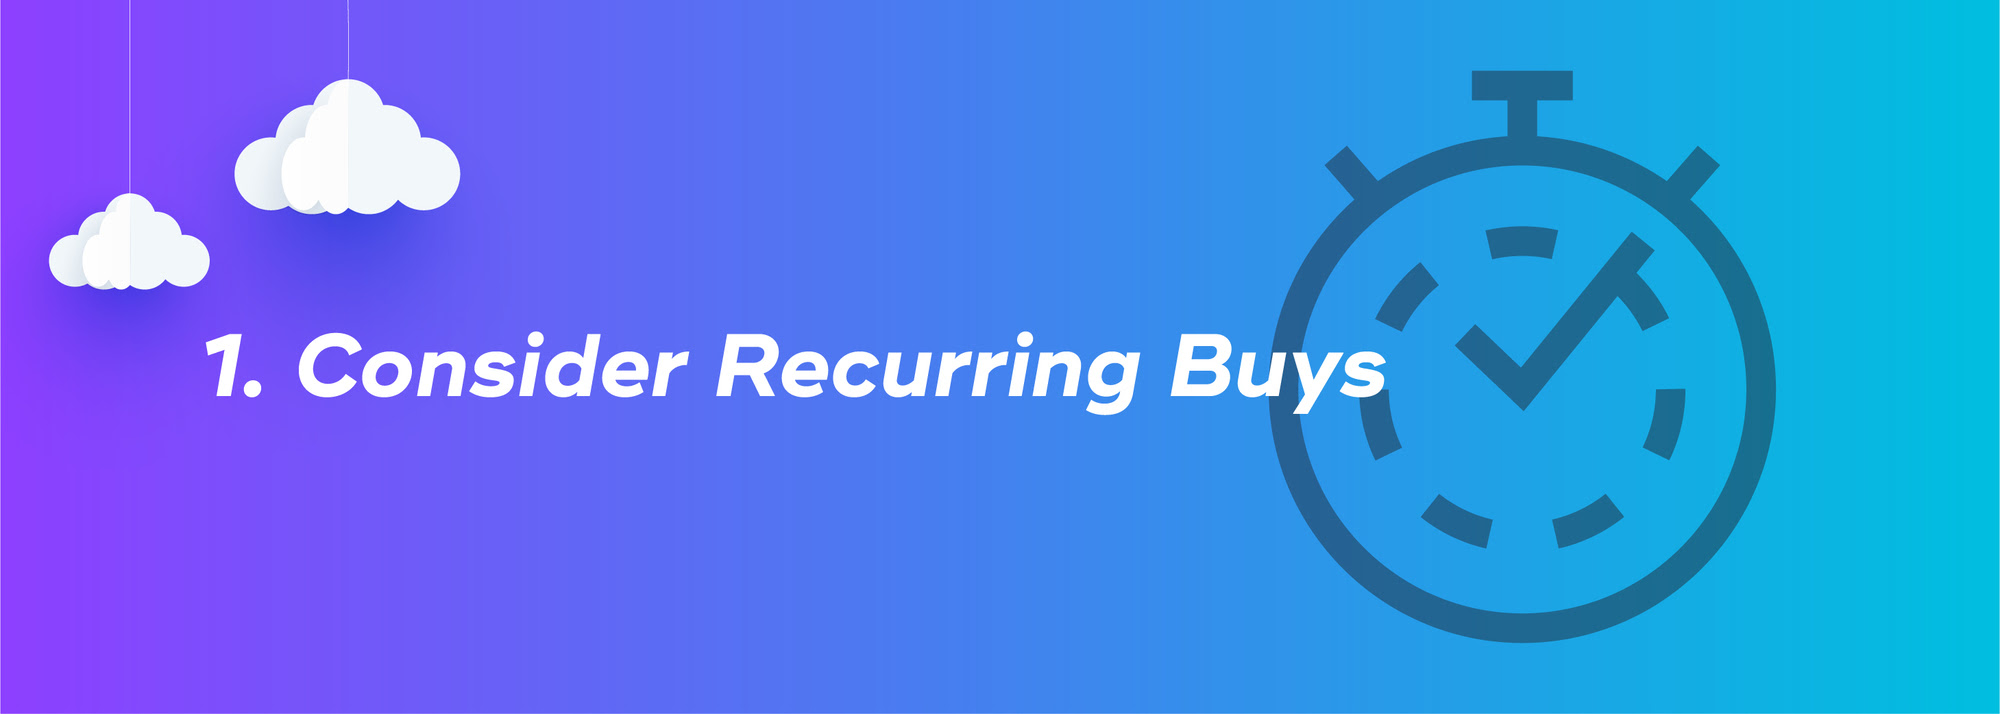 1. Consider Recurring Buys